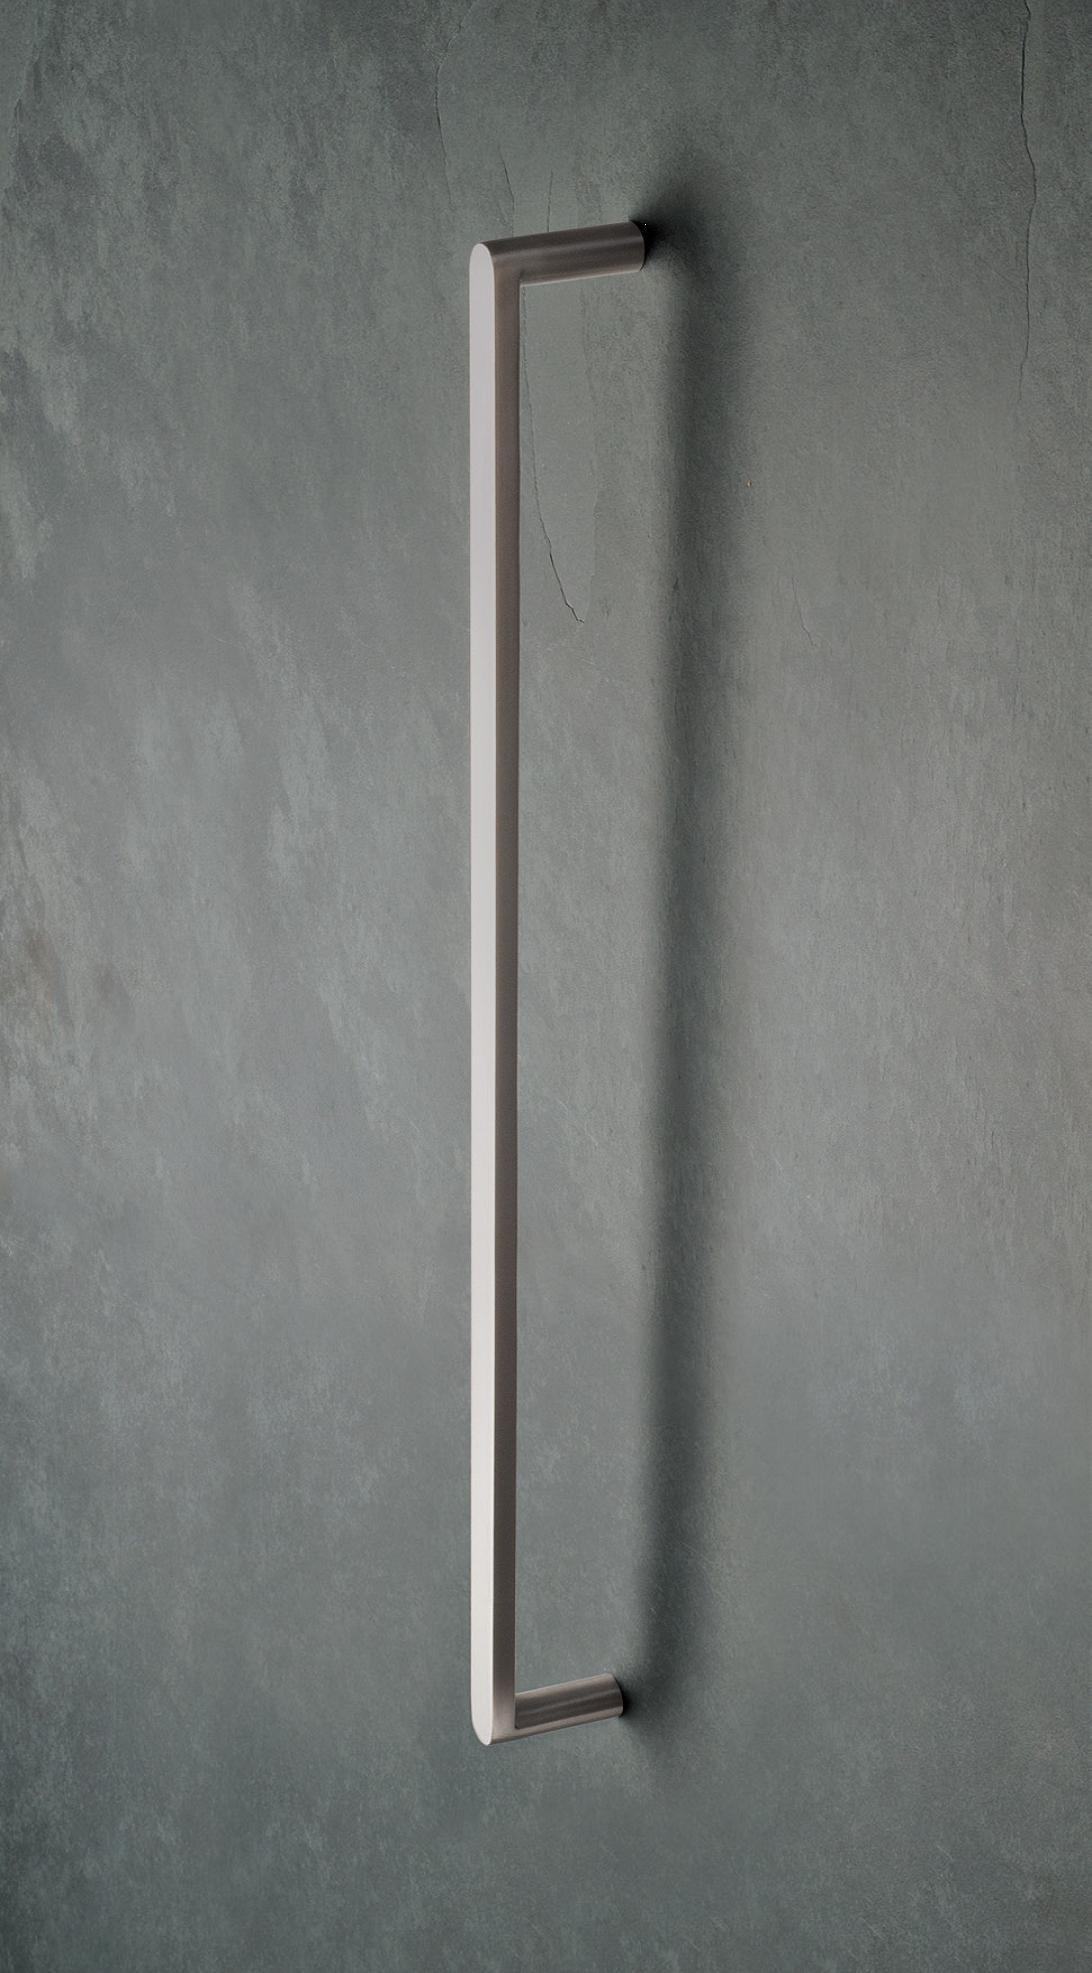 ASPH020 / 120 - ASSA ABLOY Pull Handle